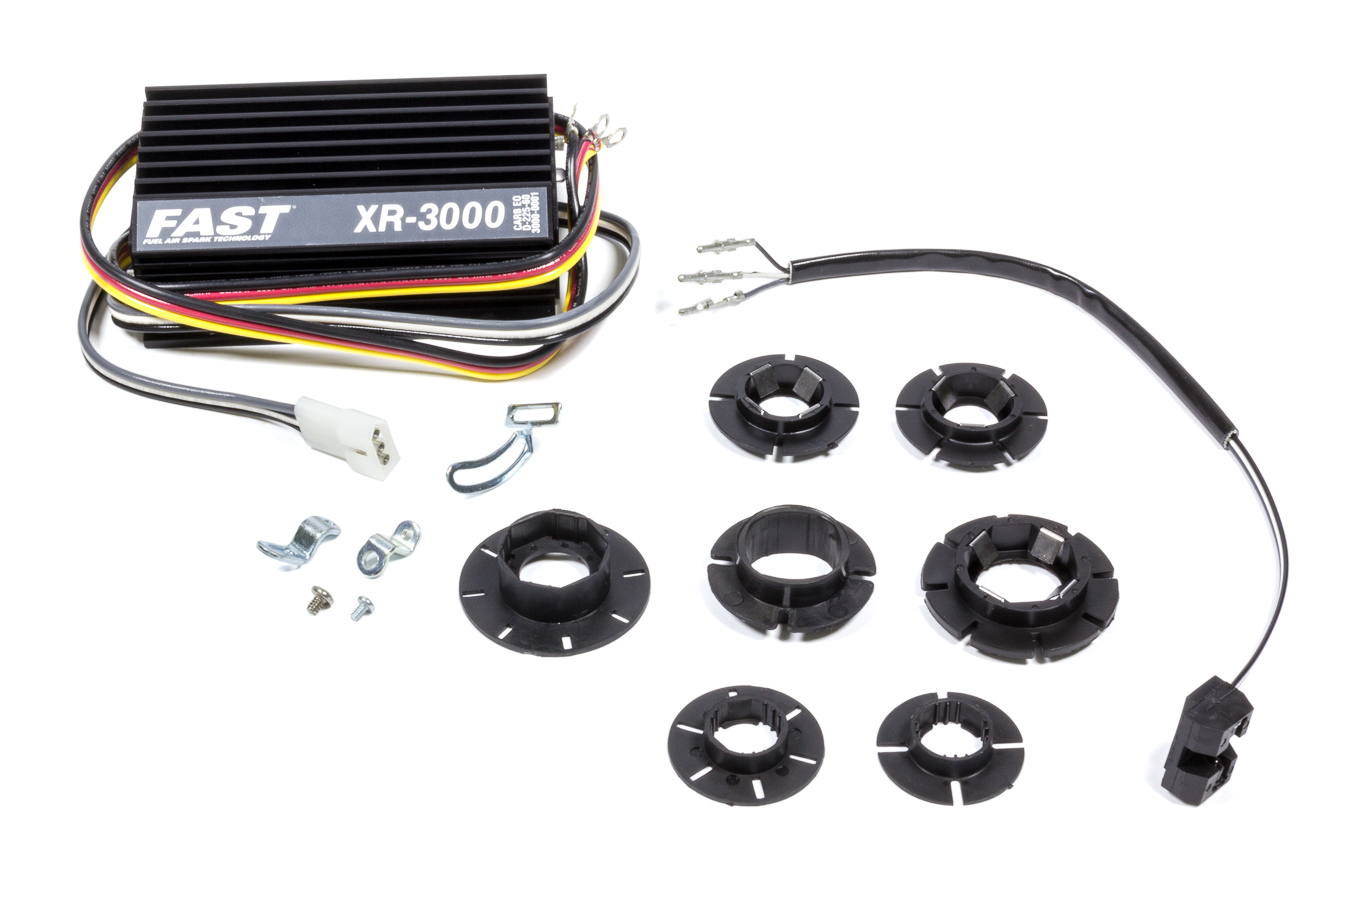 FAST 3000-0231 Ignition Conversion Kit, XR3000, Points to Electronic, Optical Trigger, Import / Universal 4 / 6 / 8-Cylinder, Kit